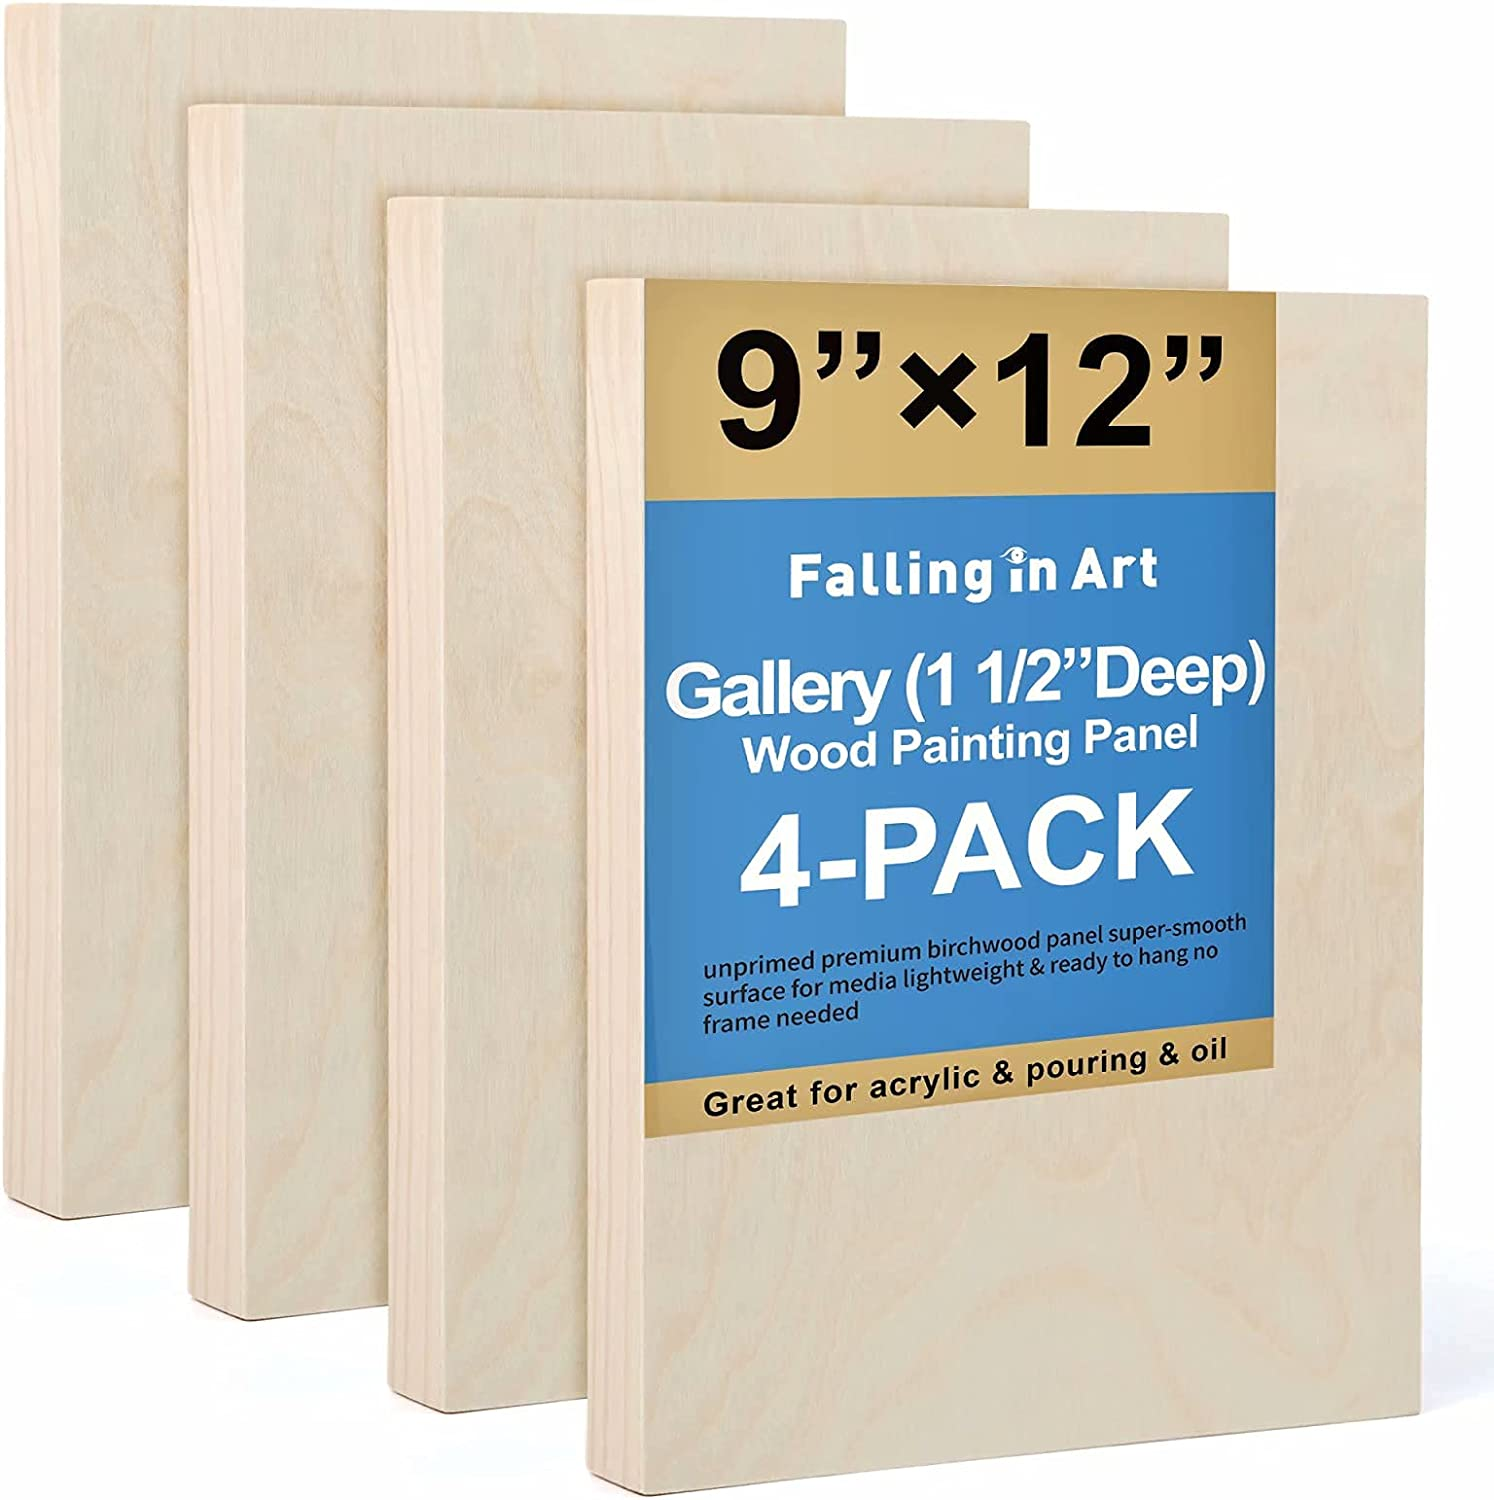 Unfinished Birch Wood Canvas Panels Kit Falling 4 40% OFF Cheap Sale in o Pack Award Art